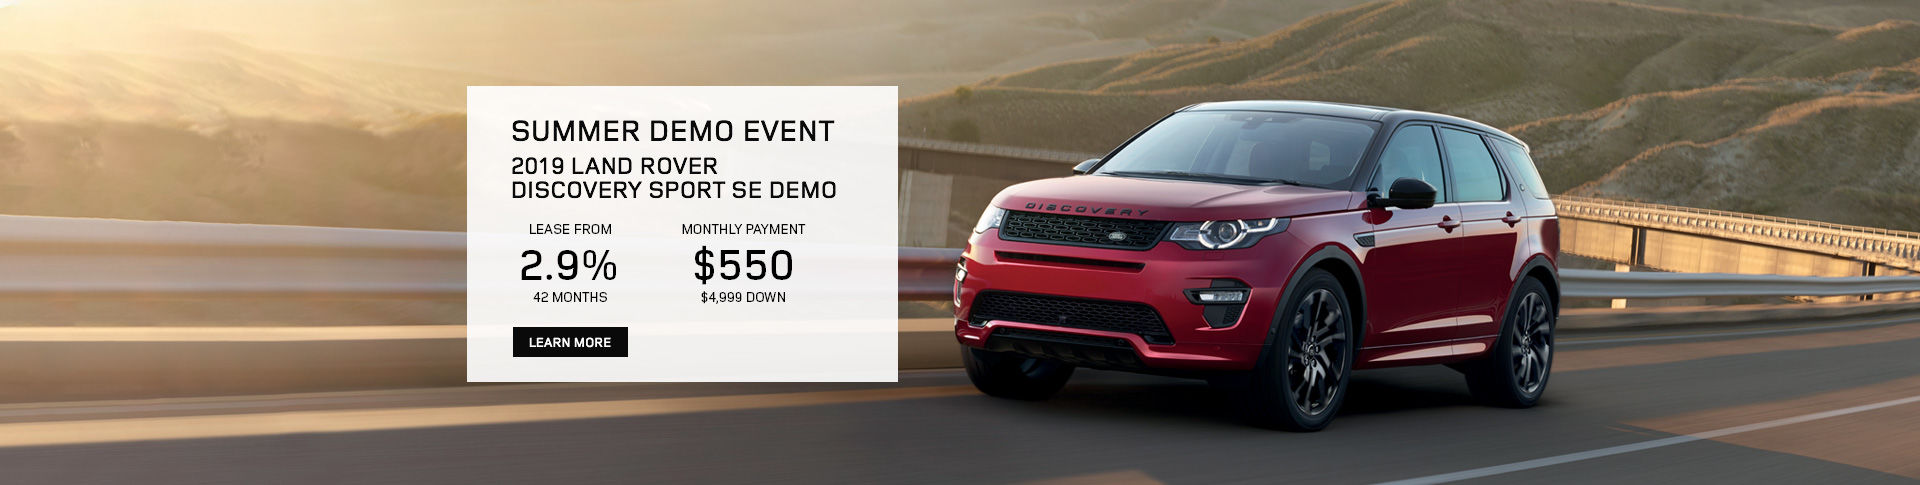 2019 July | Discovery Sport Special